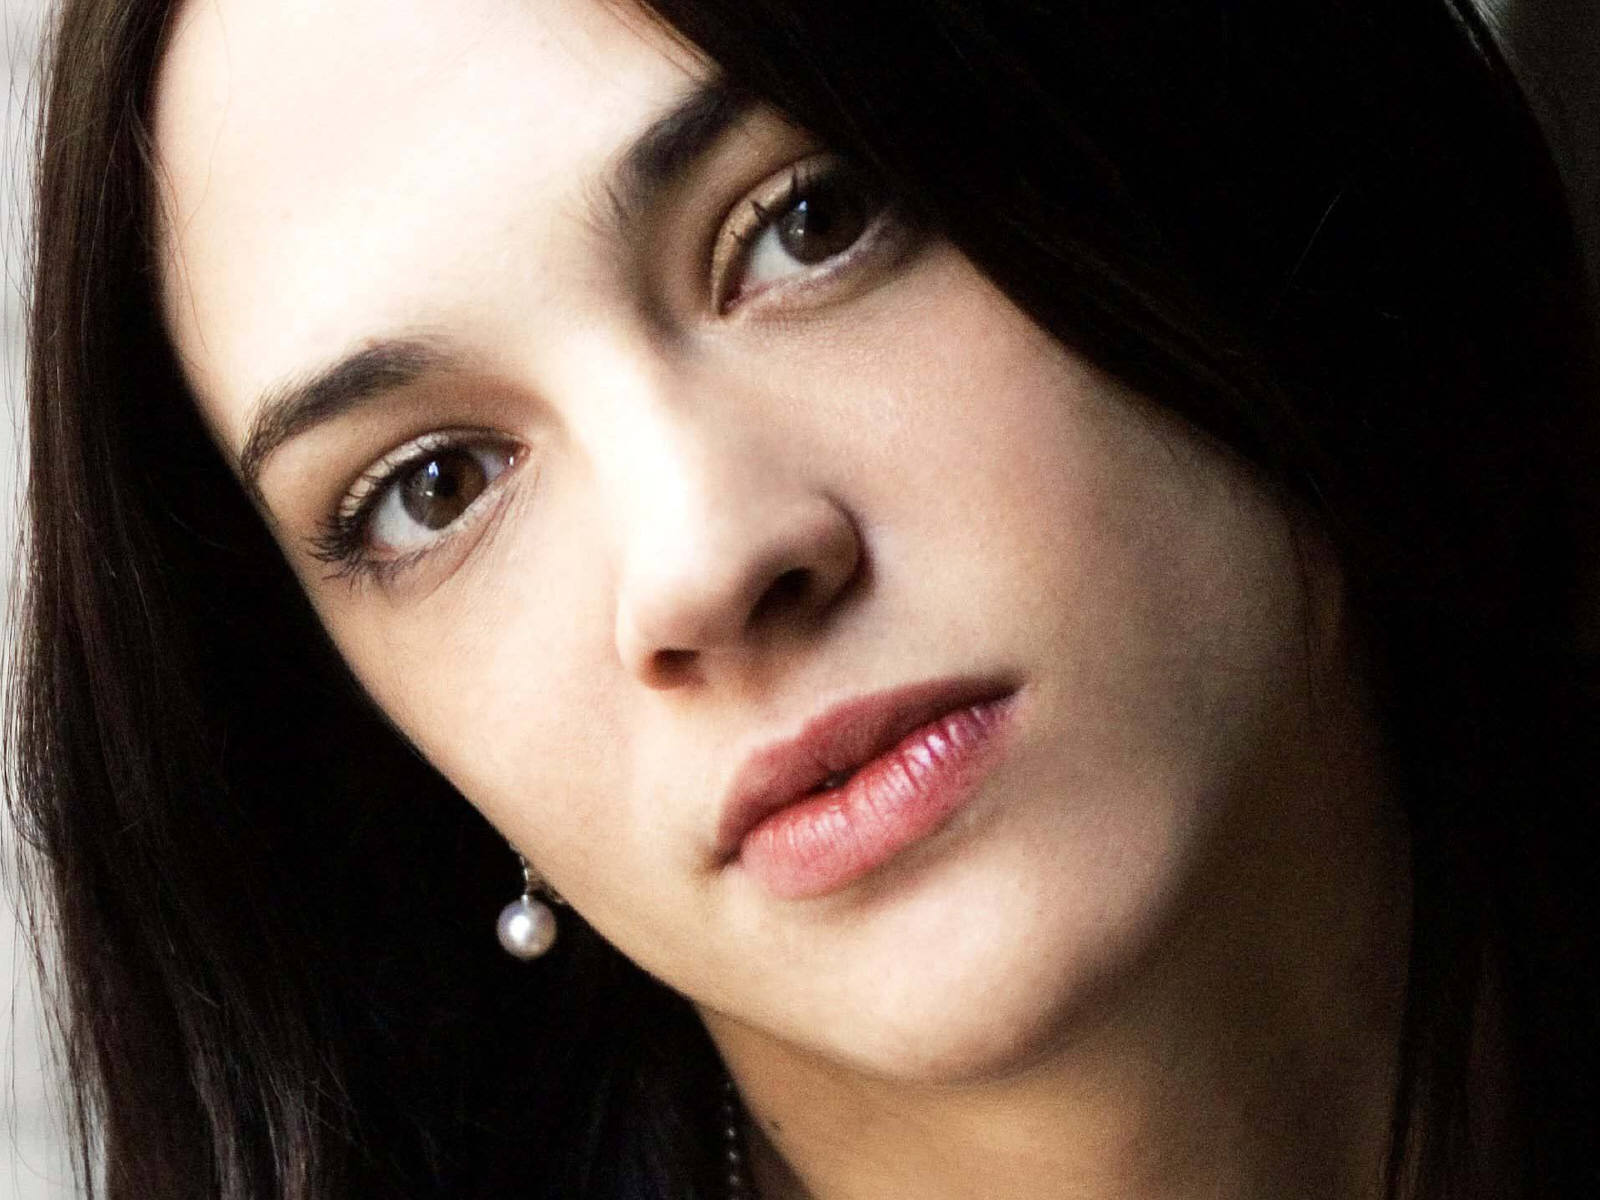 Asia Argento (born 1975) nudes (23 foto and video), Tits, Paparazzi, Feet, butt 2019